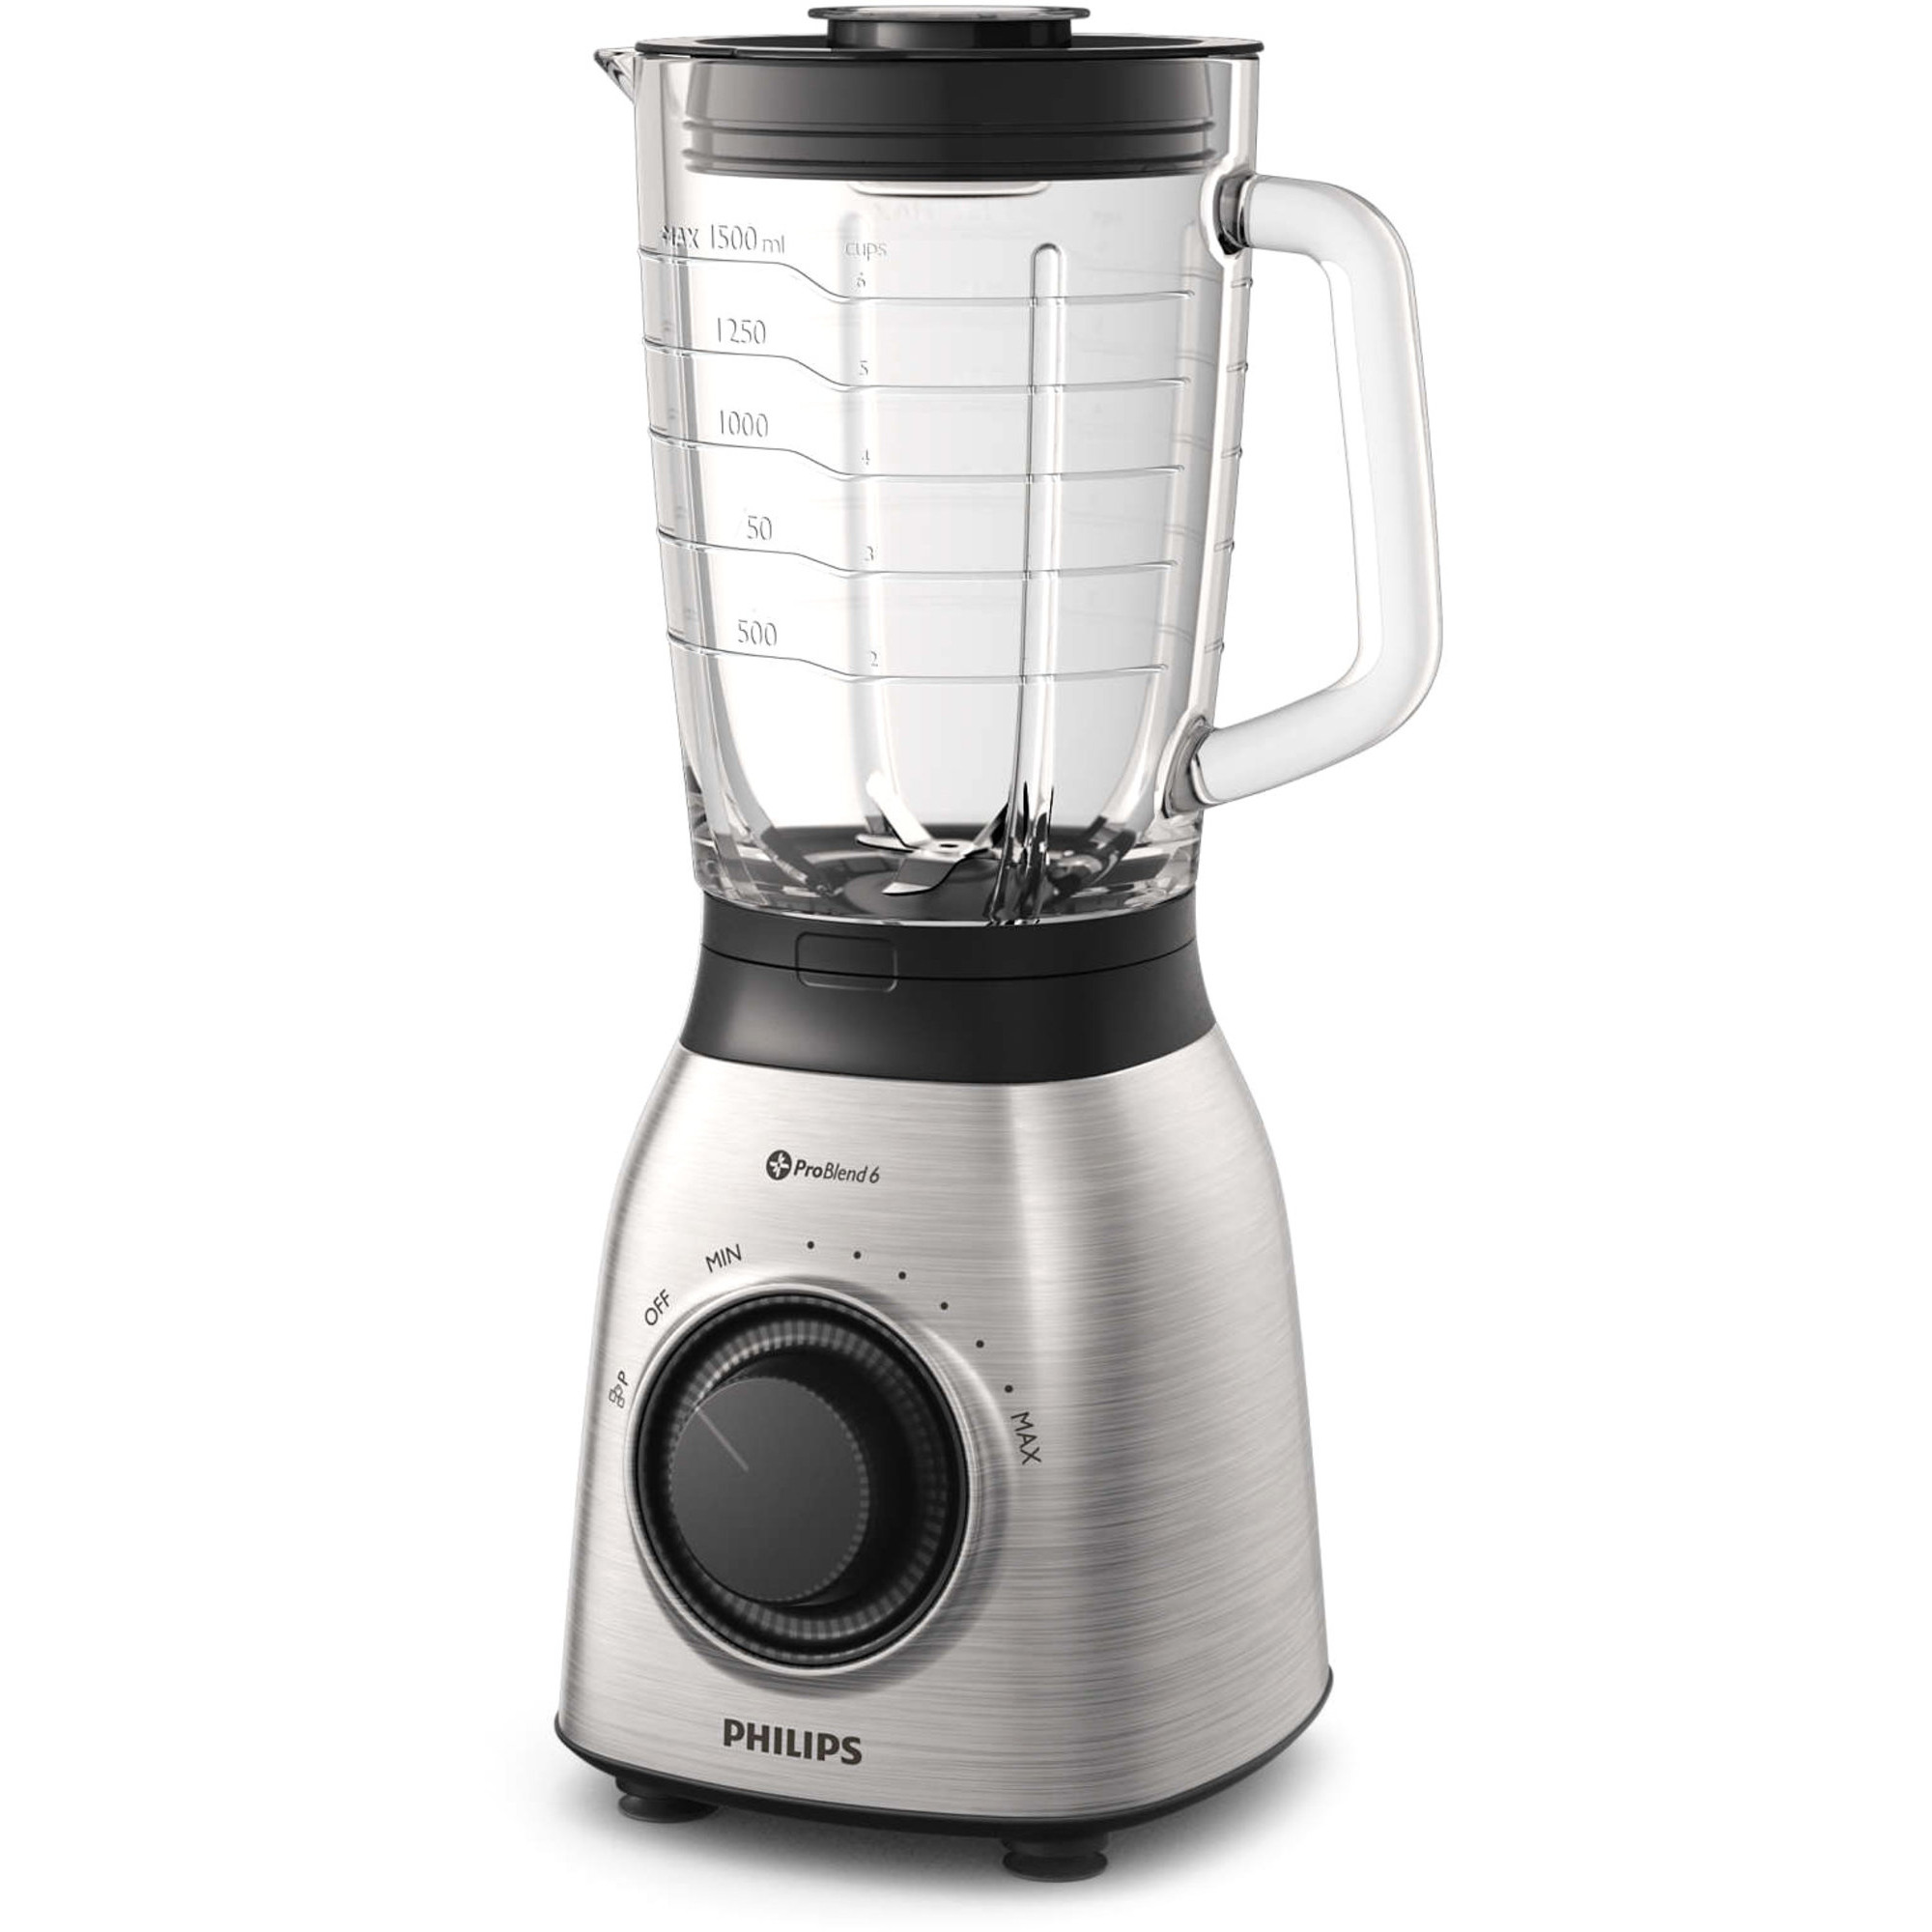 Philips HR3555/00 Blender 700w metal 2l